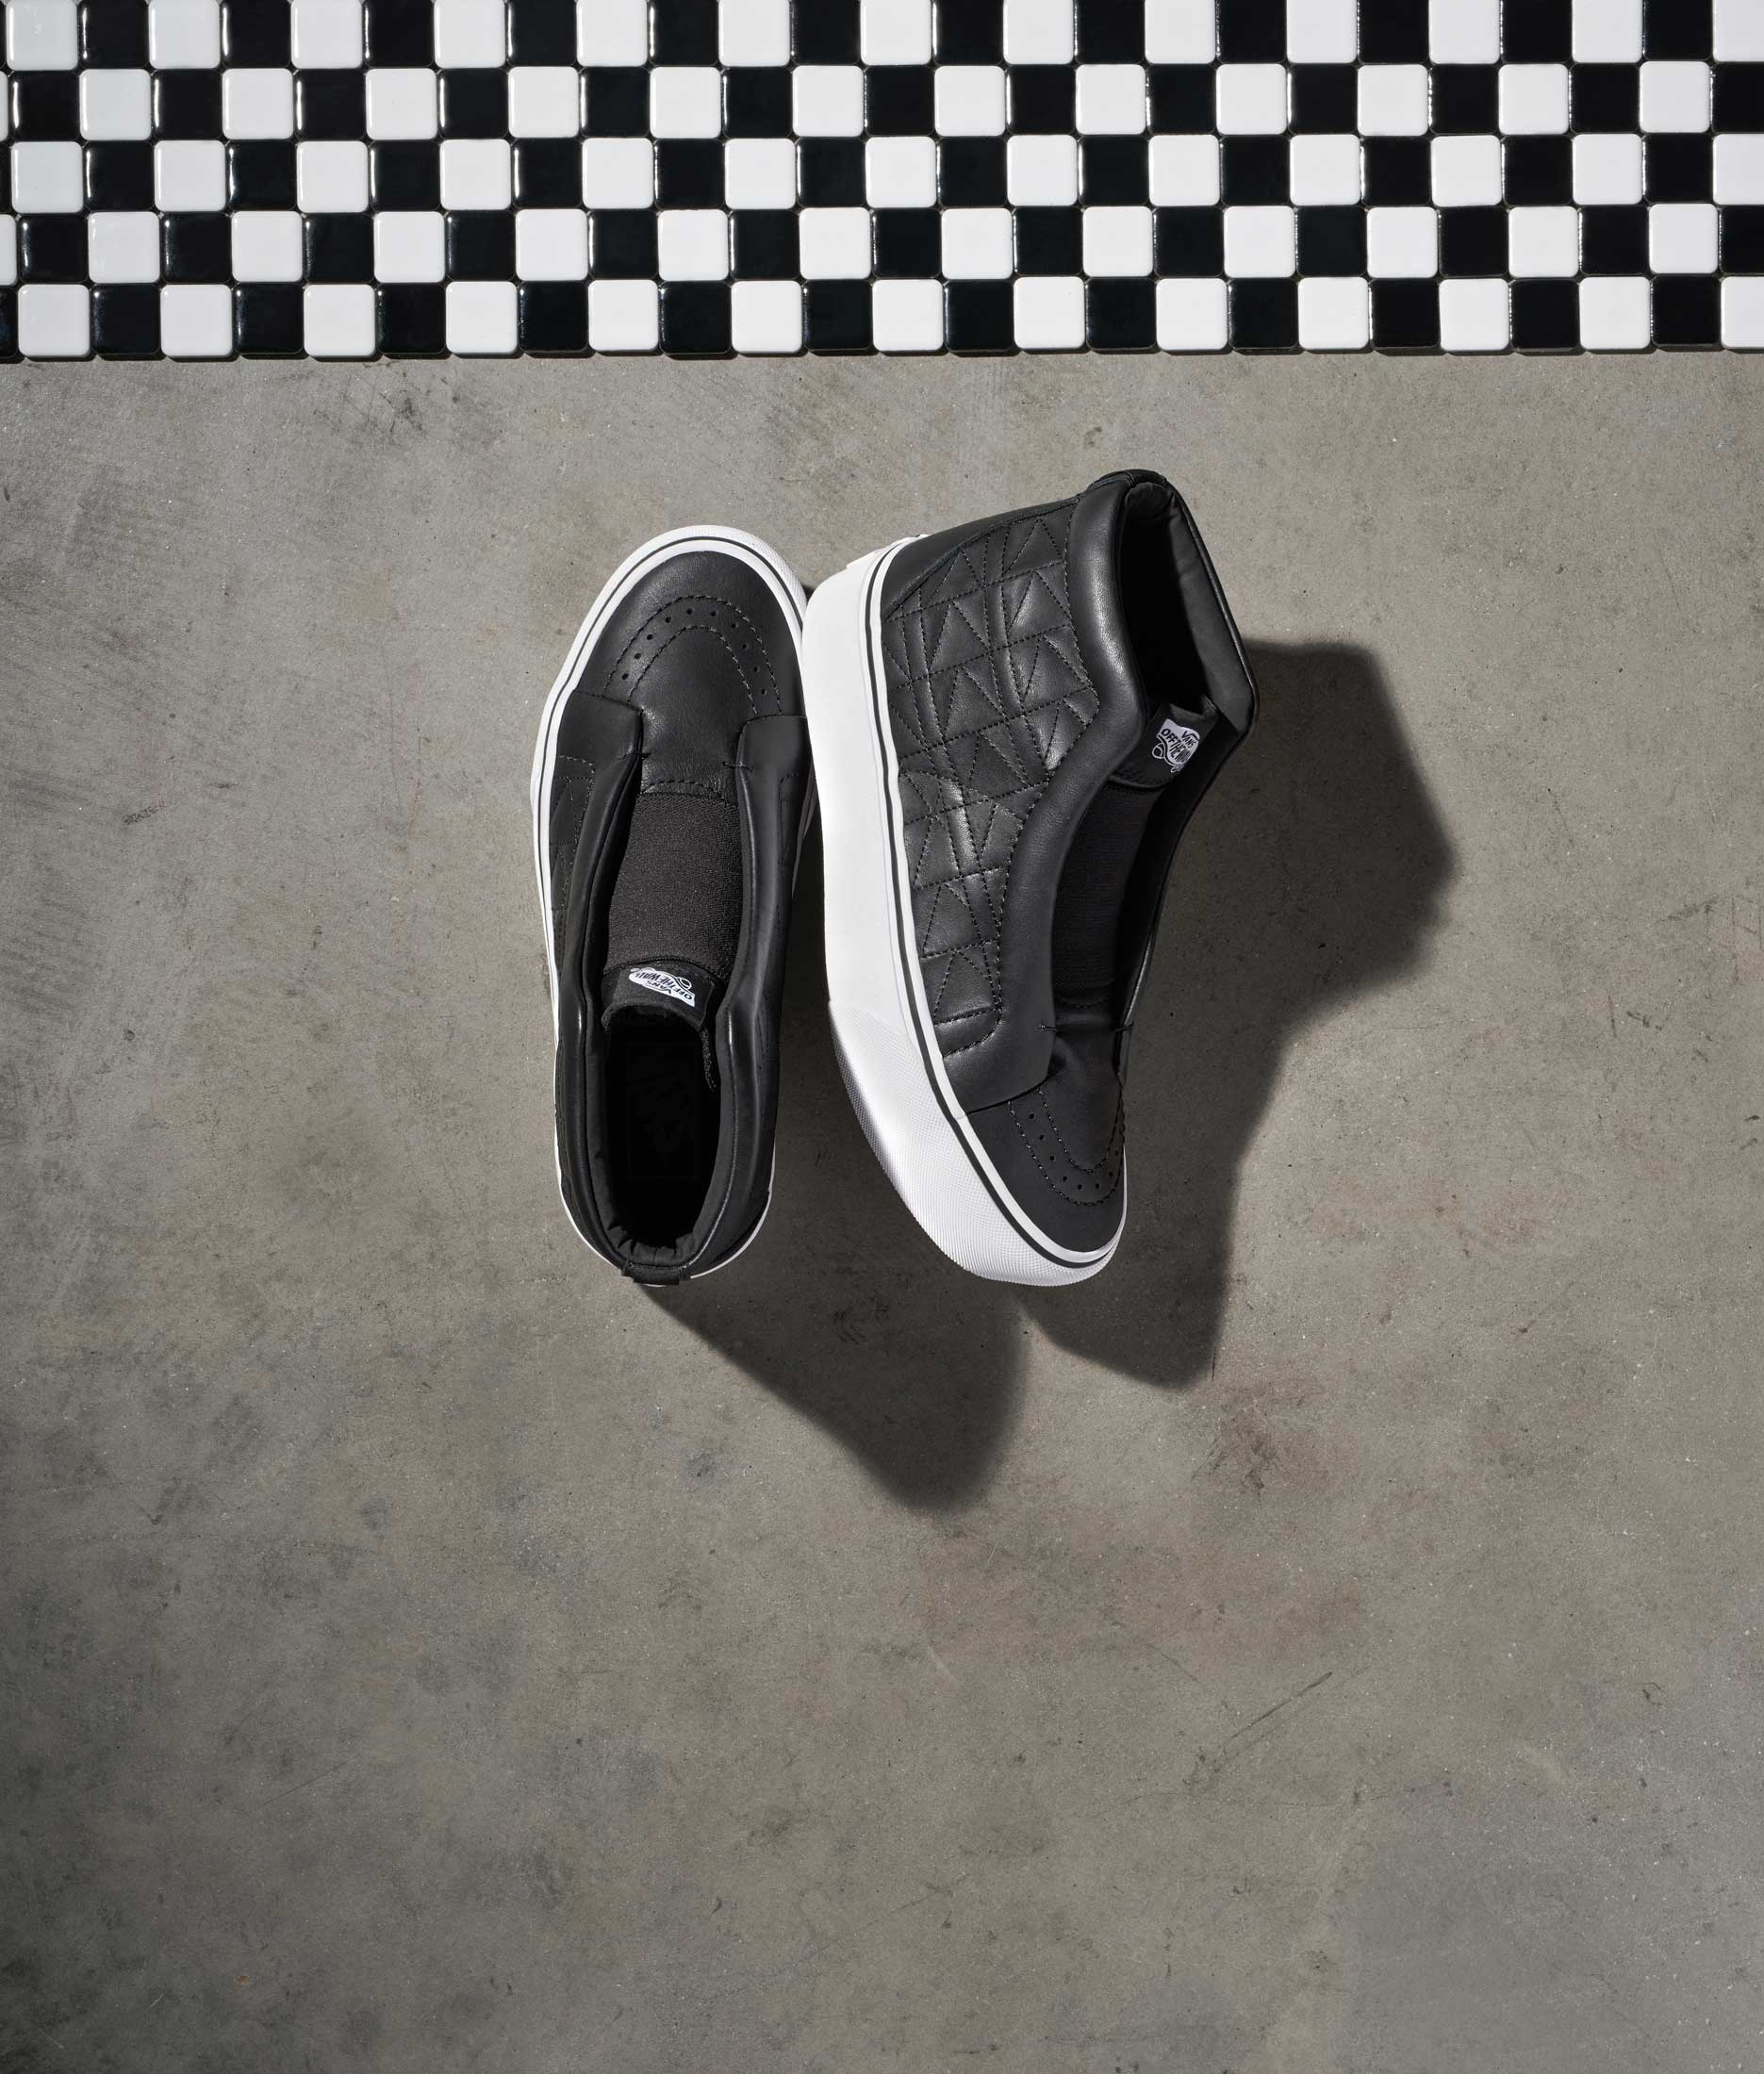 1ff2232b606 Vans Karl Lagerfeld New Collection Sneakers Shoe Styles